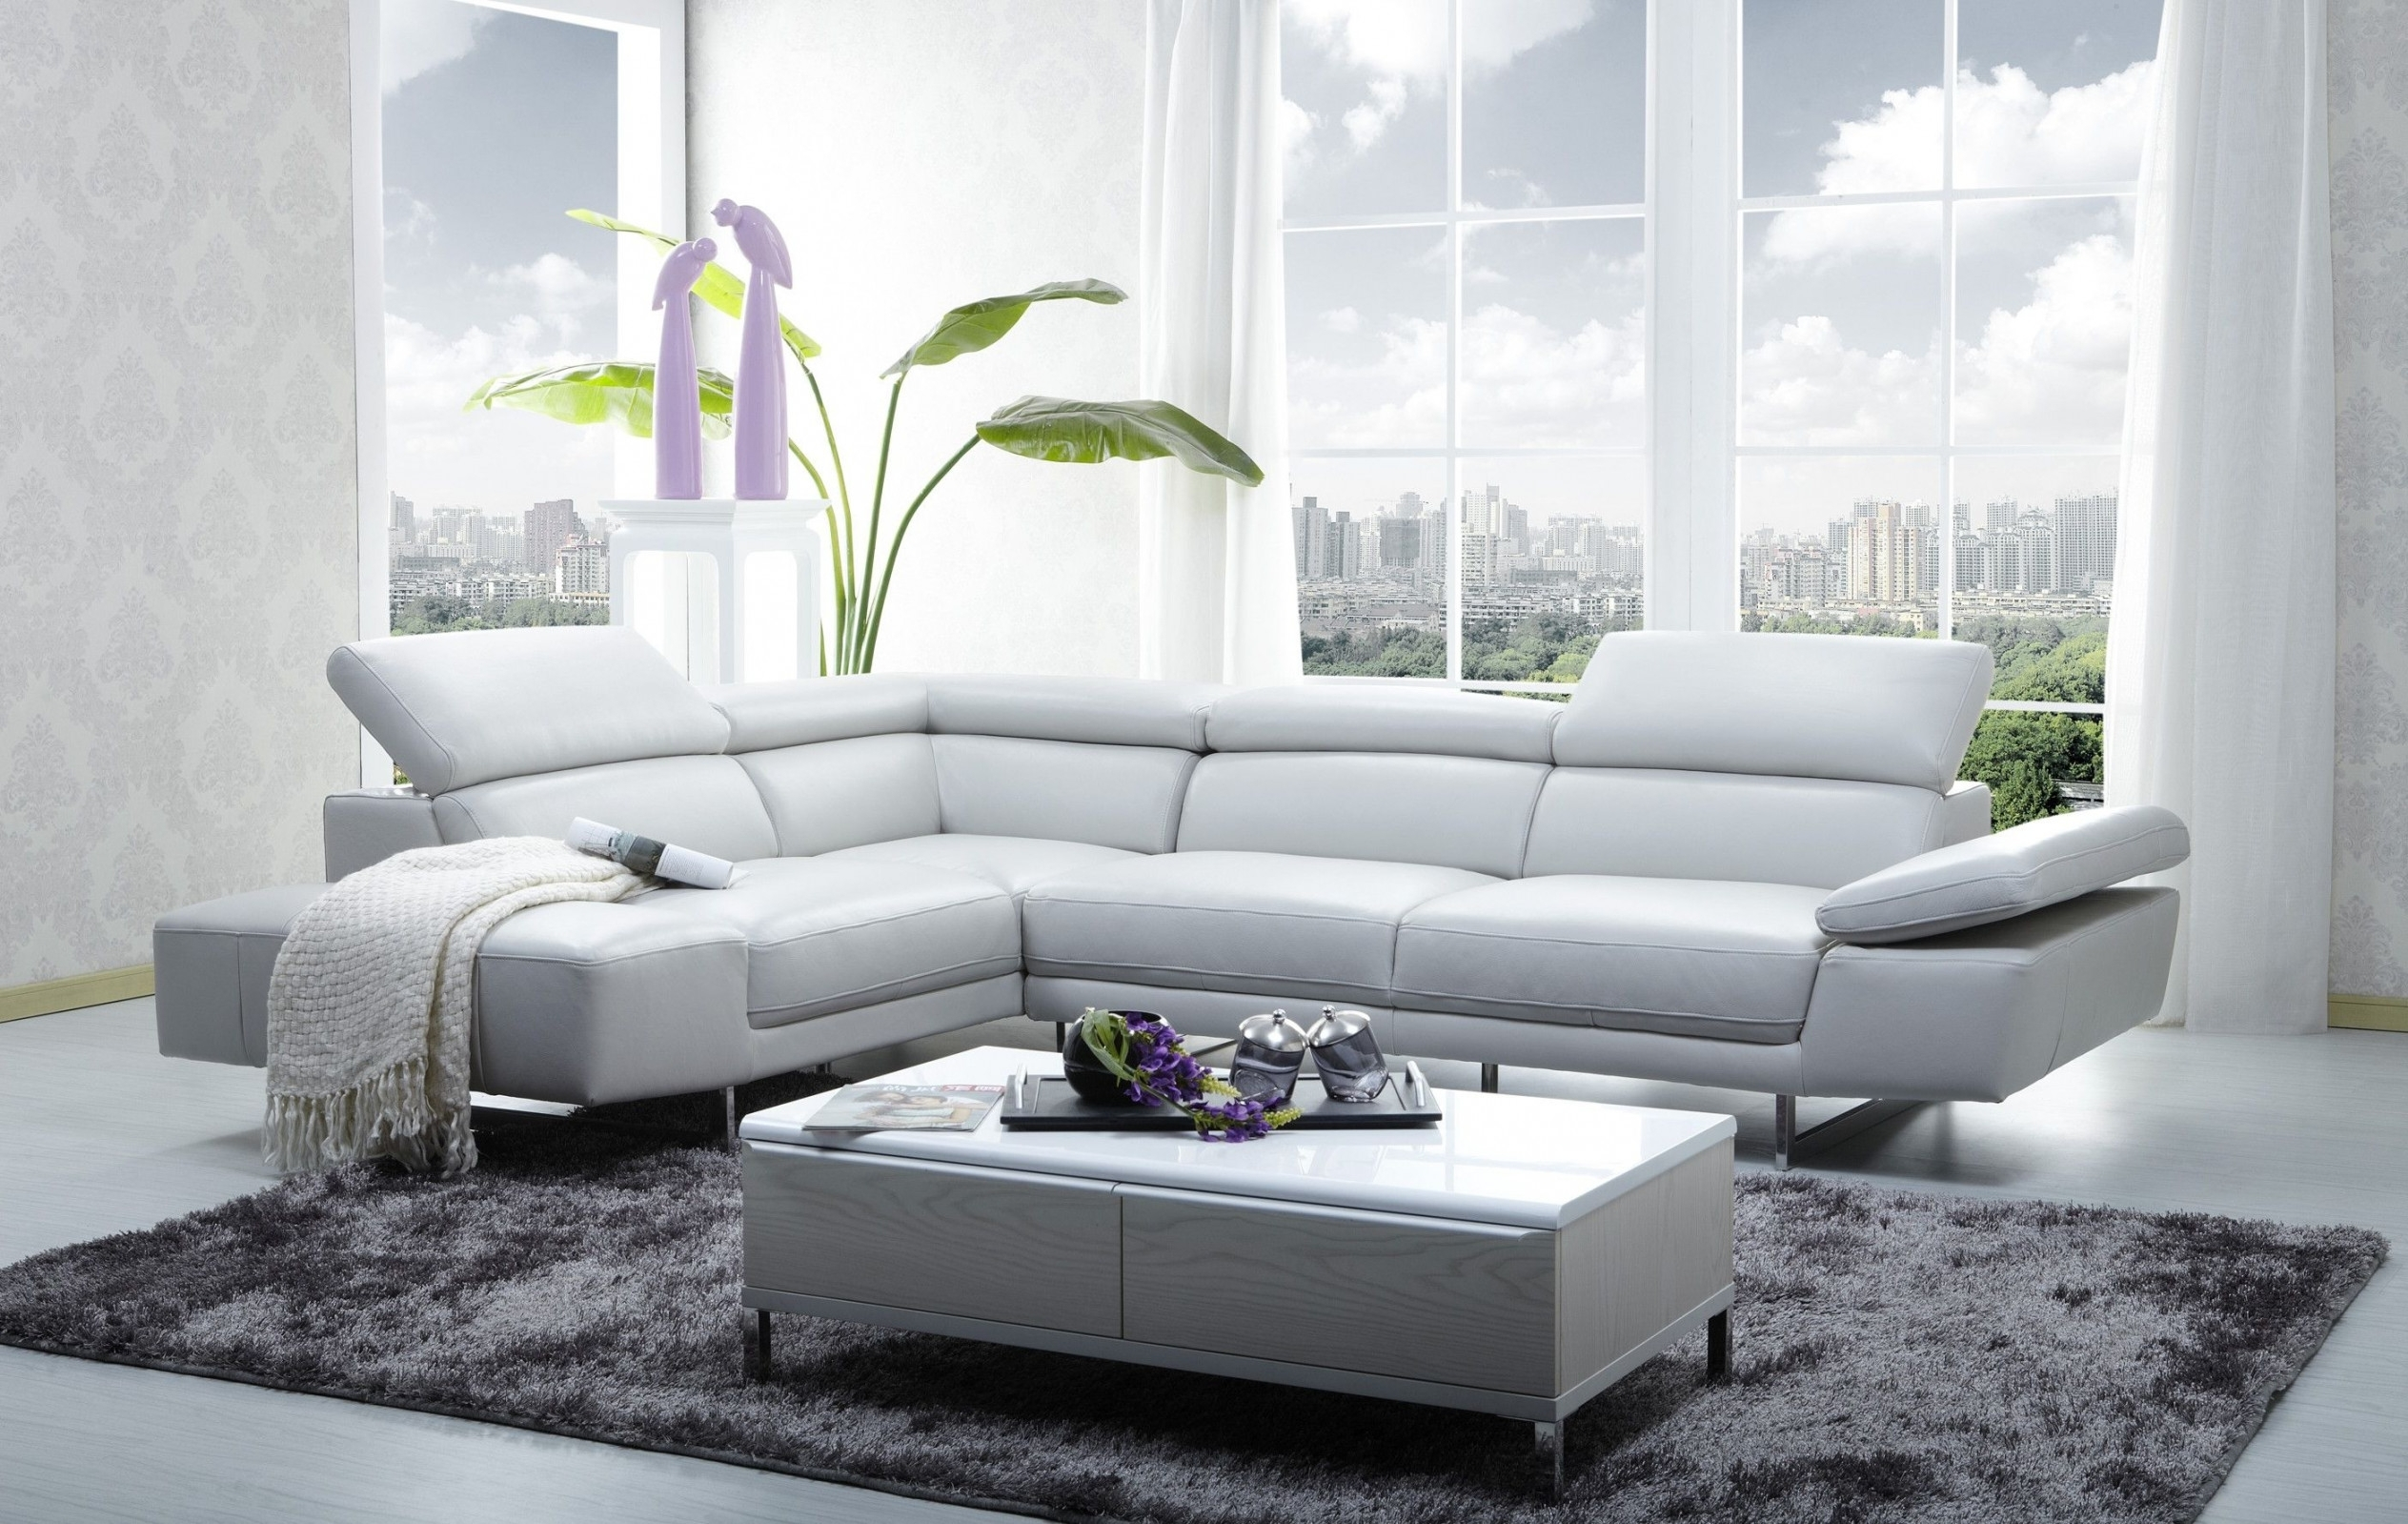 free sofa on kijiji calgary designs l shaped sofas leather home interior